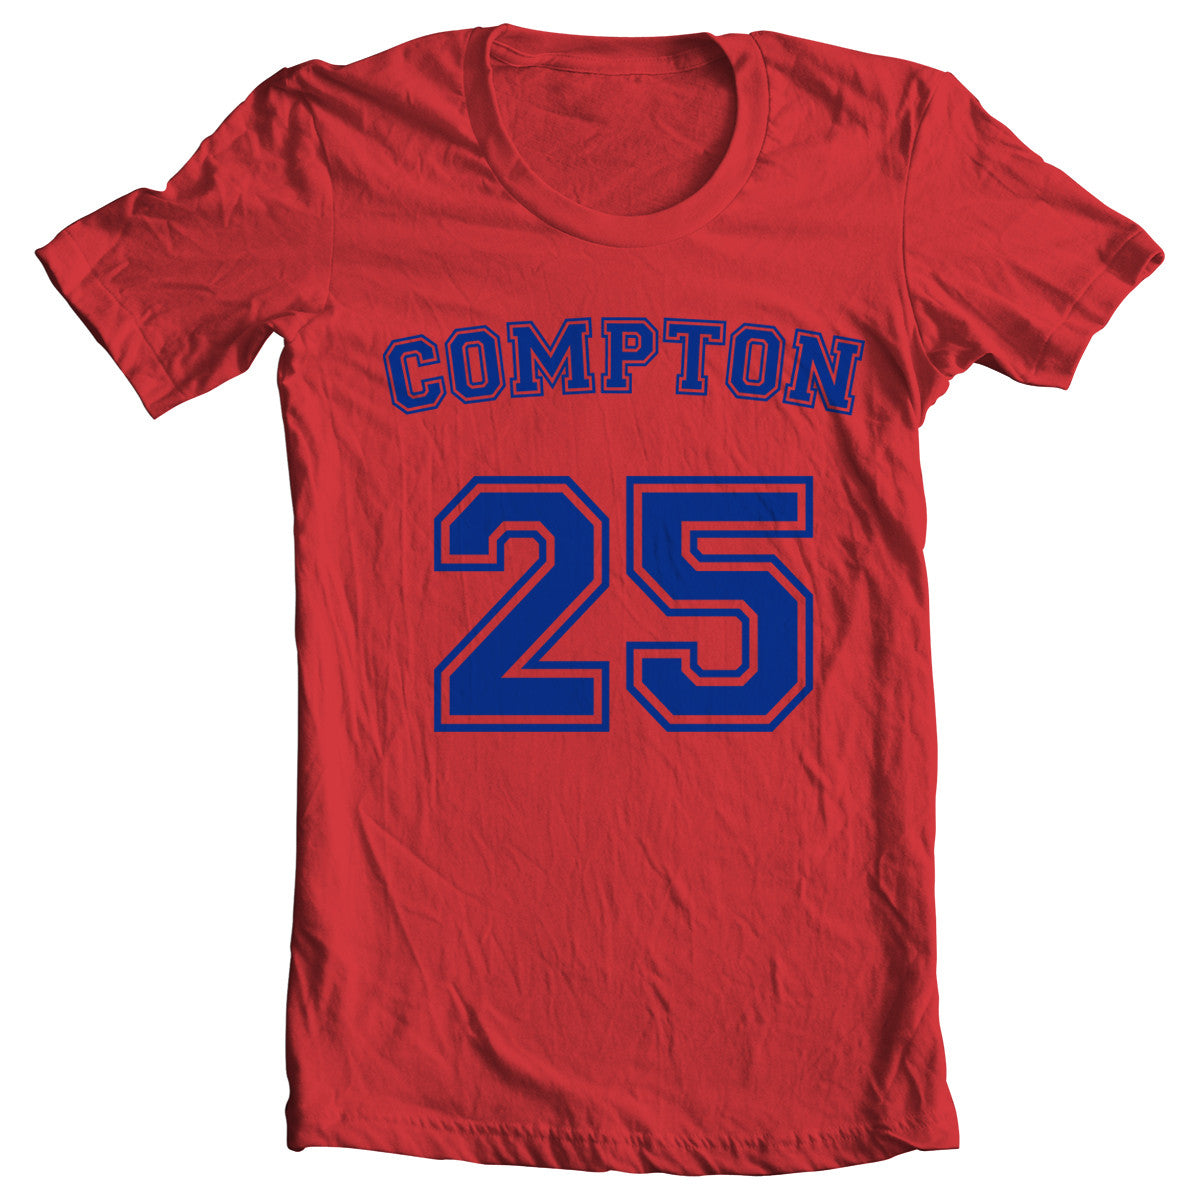 Compton Jersey